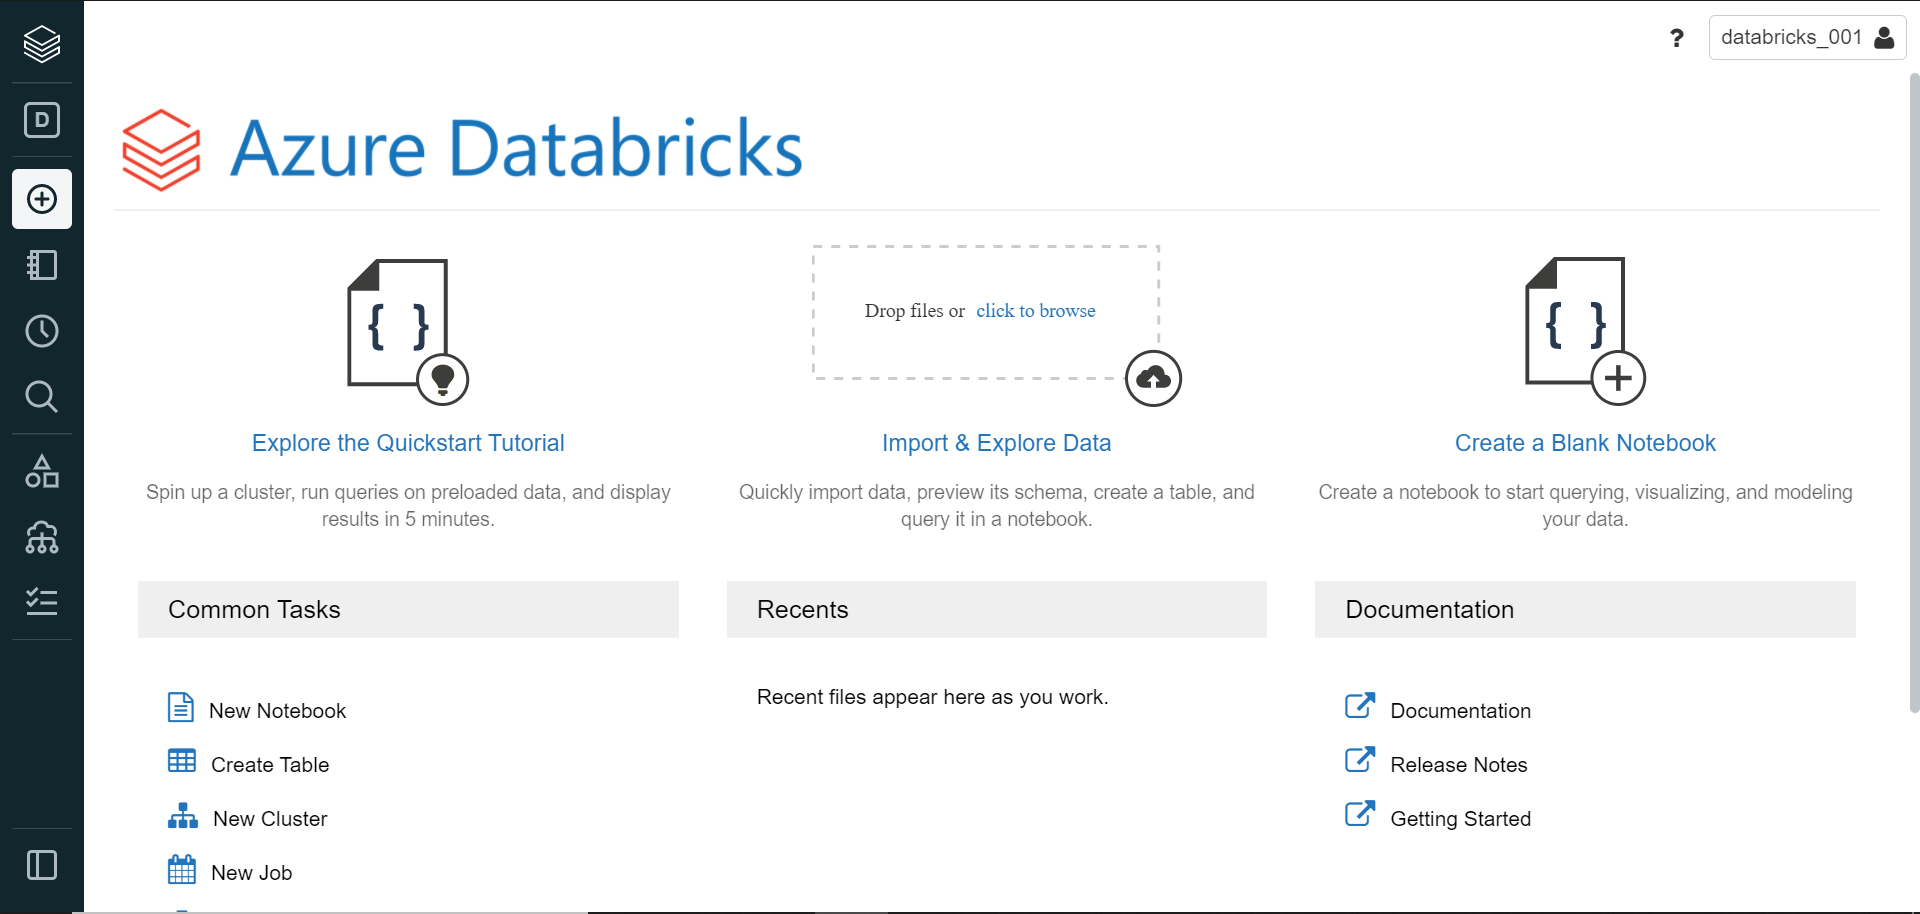 https://s33046.pcdn.co/wp-content/uploads/2021/10/databricks-workspace-home-page-1.png